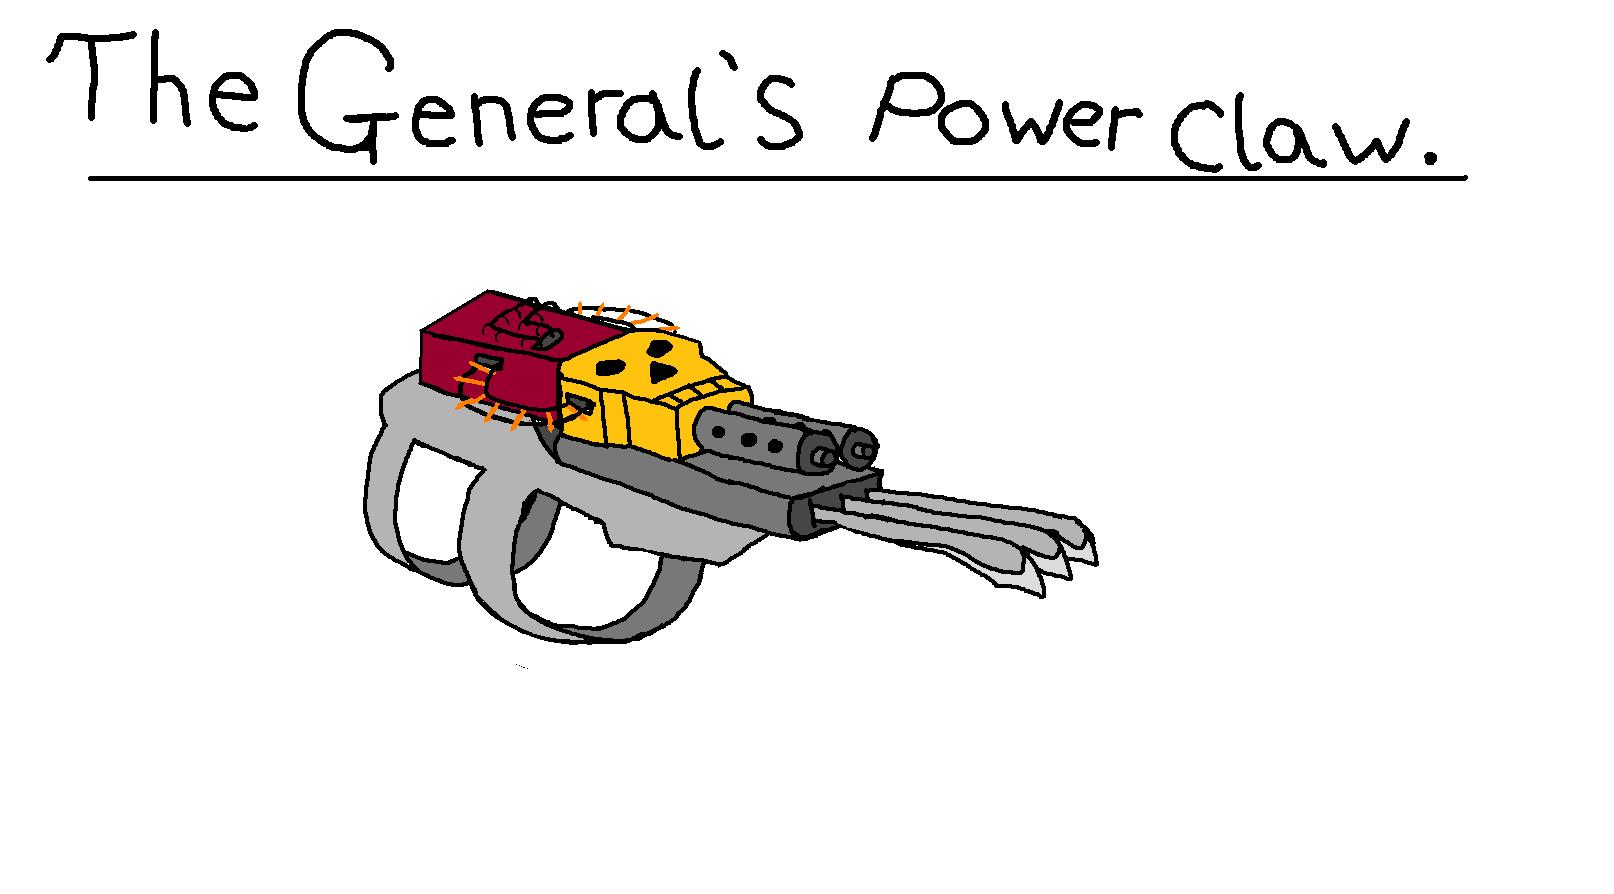 The General's Power Claw